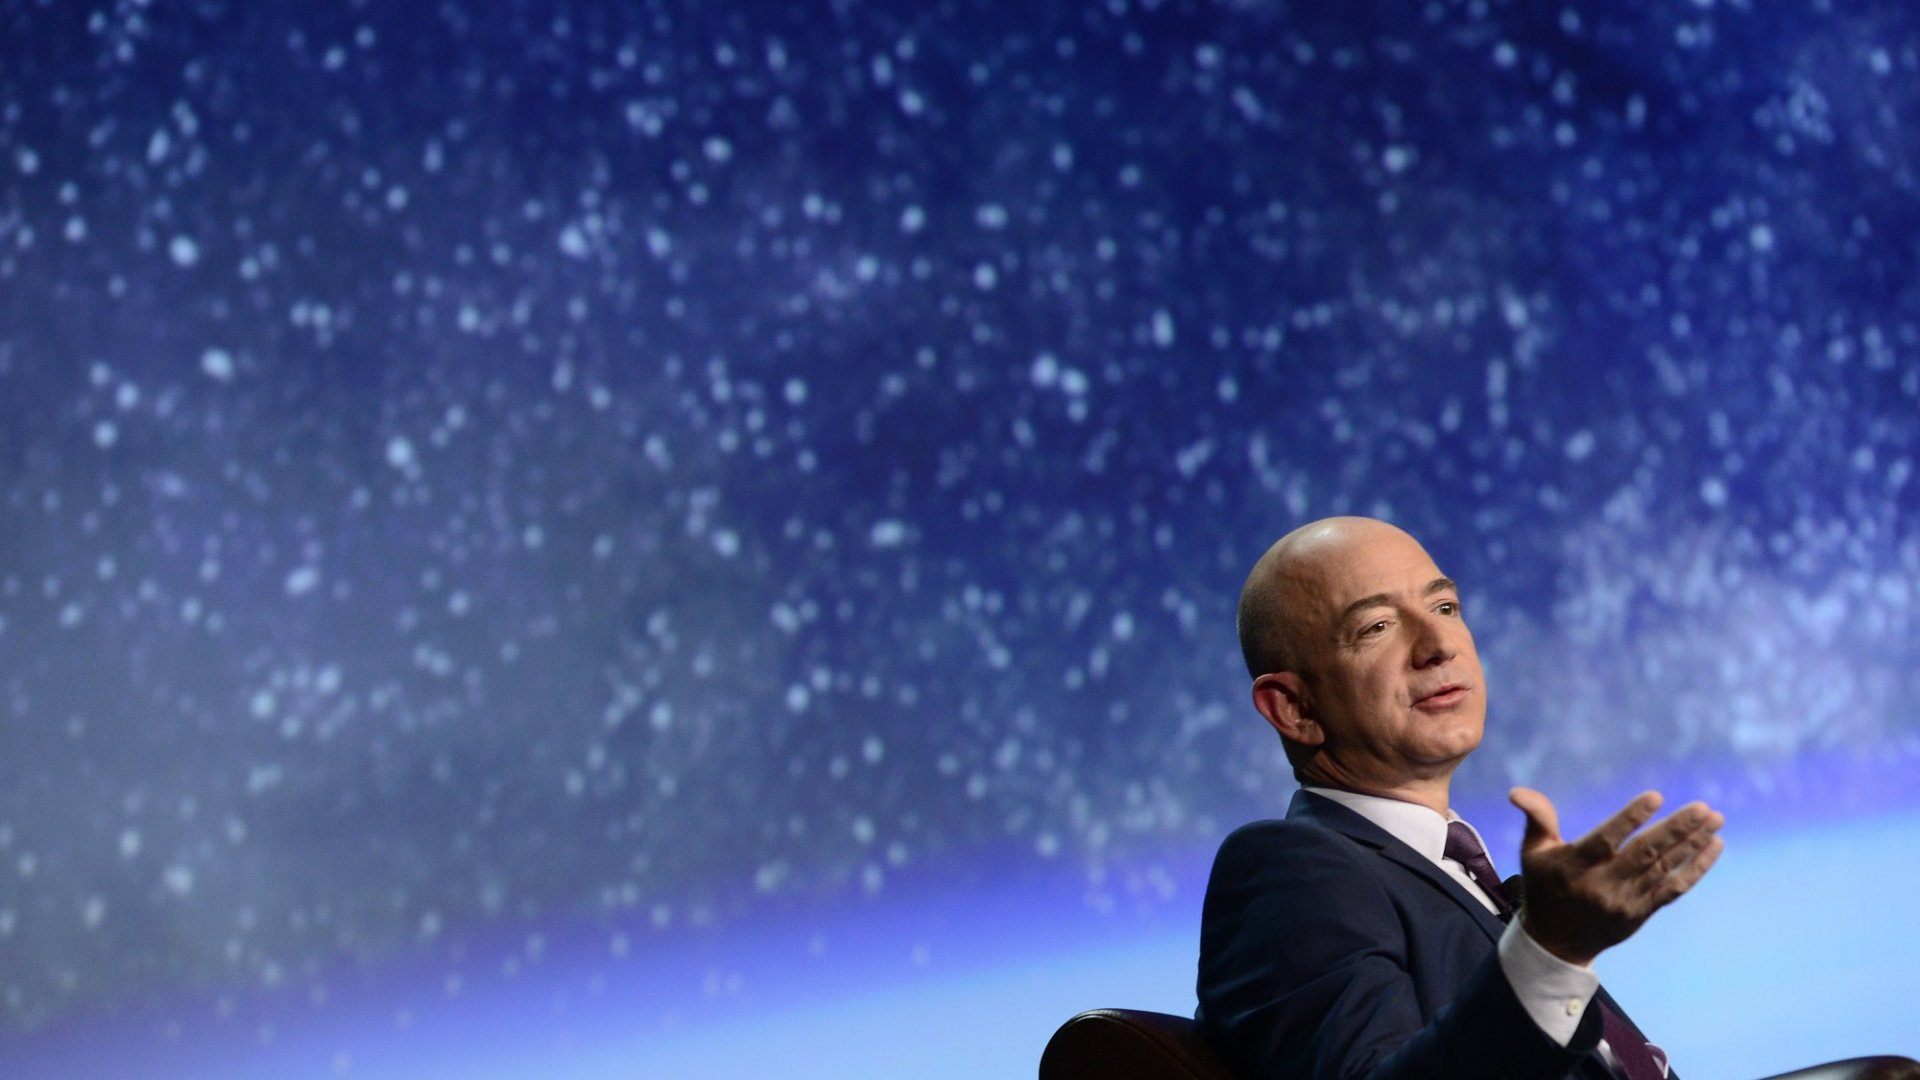 Why You Should Be Like Elon Musk, Not Jeff Bezos (Hint: It's About Space)